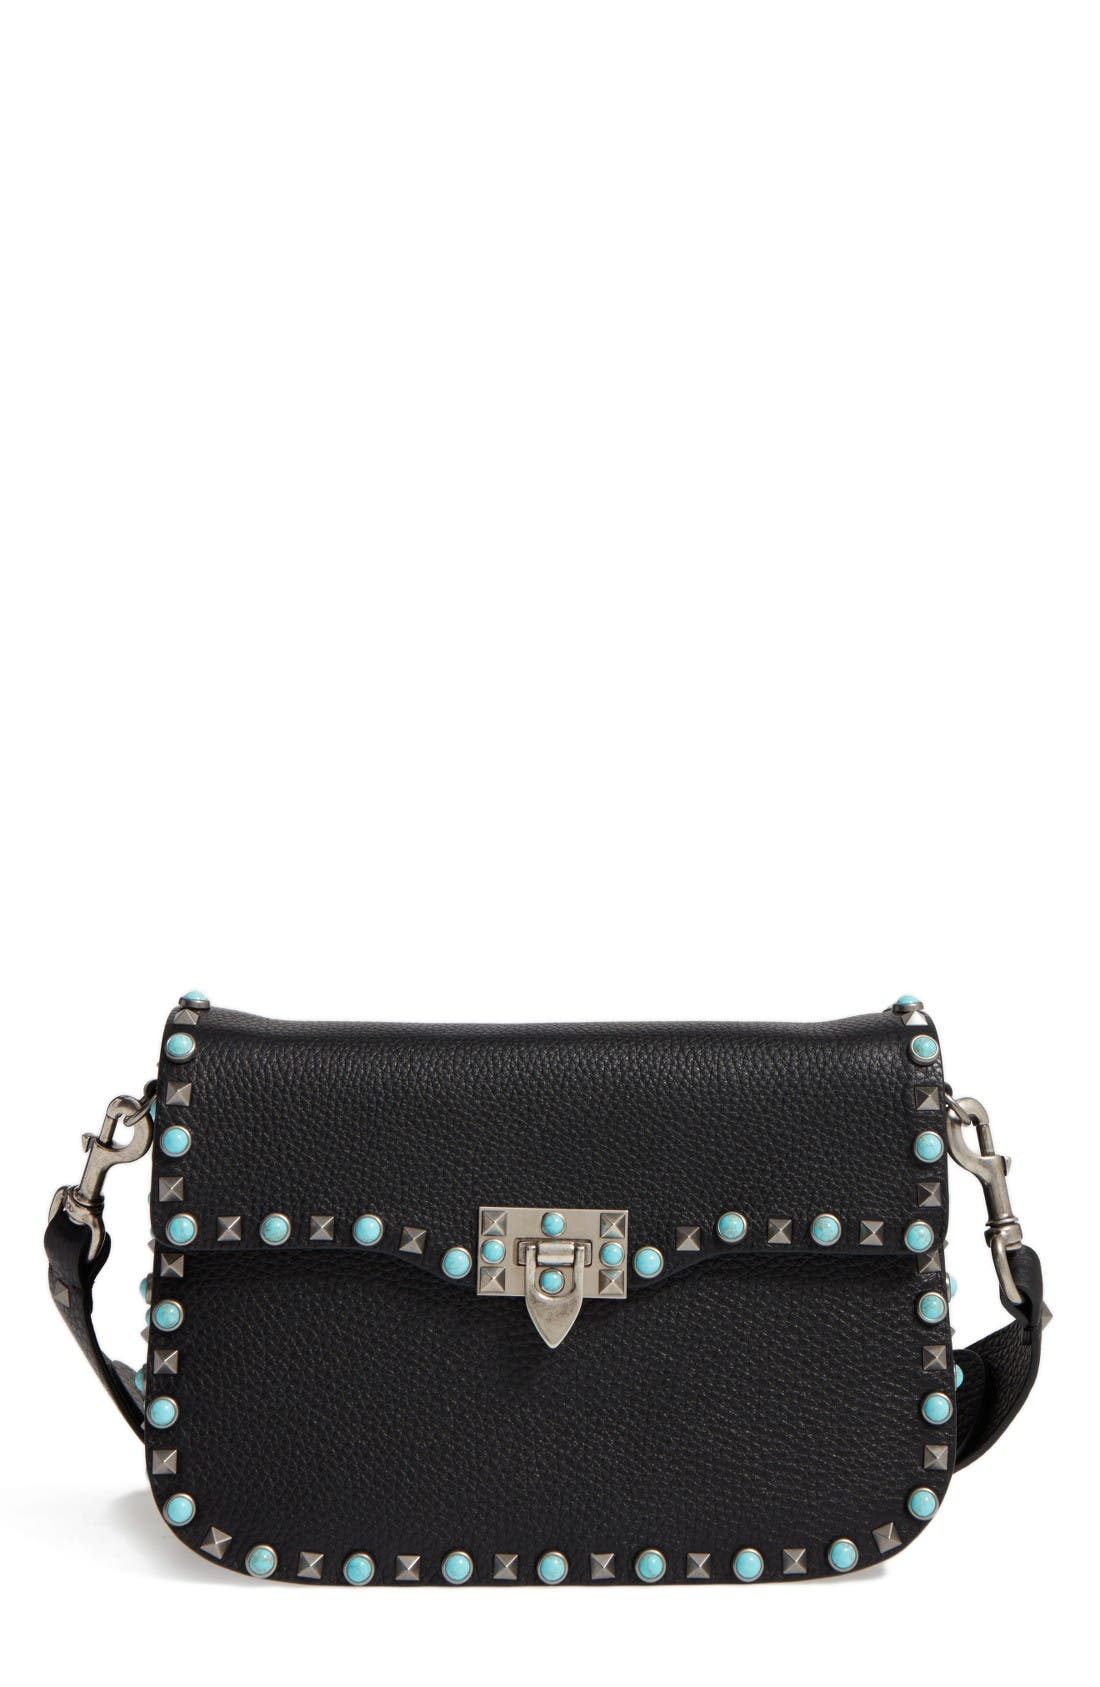 Alternate Image 1 Selected - VALENTINO GARAVANI Rolling Rockstud Guitar Strap Leather Shoulder Bag